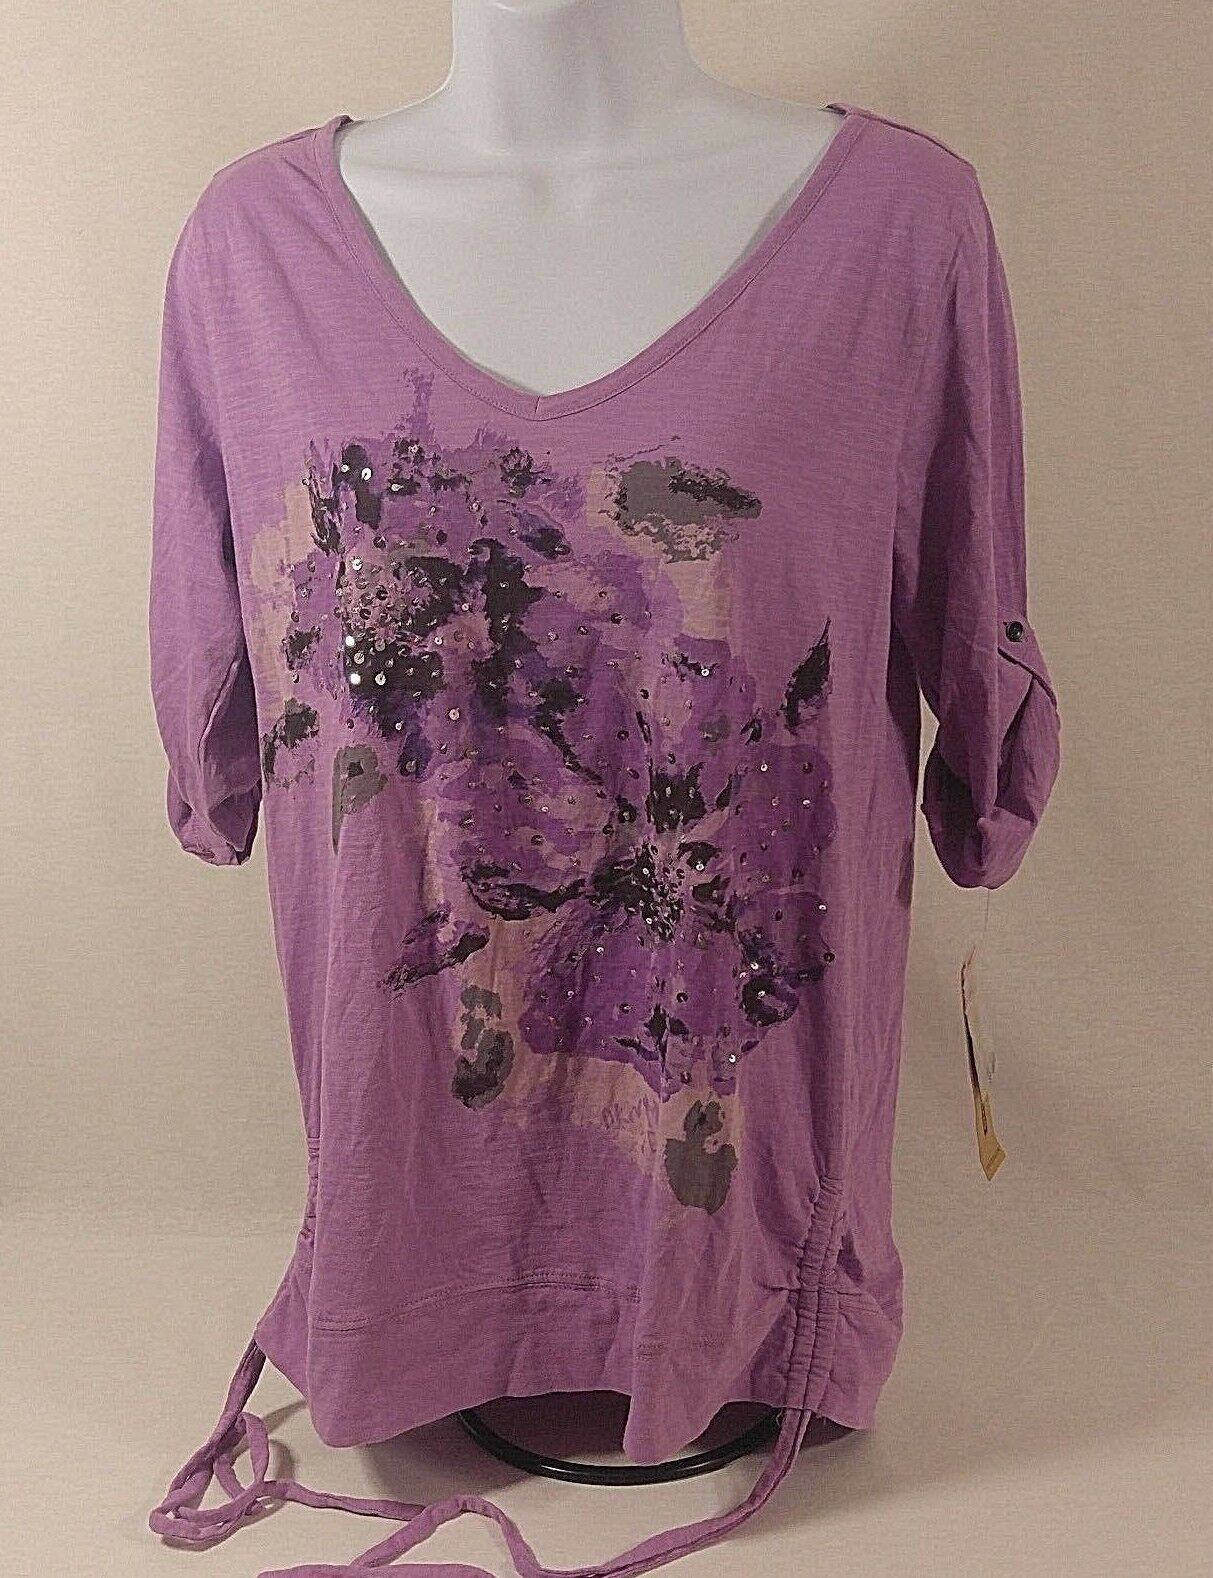 Primary image for DKNY Jeans Womens Casual Top Pink V-Neck Floral Sequin Ruched 3/4 Sleve NWT Sz-M